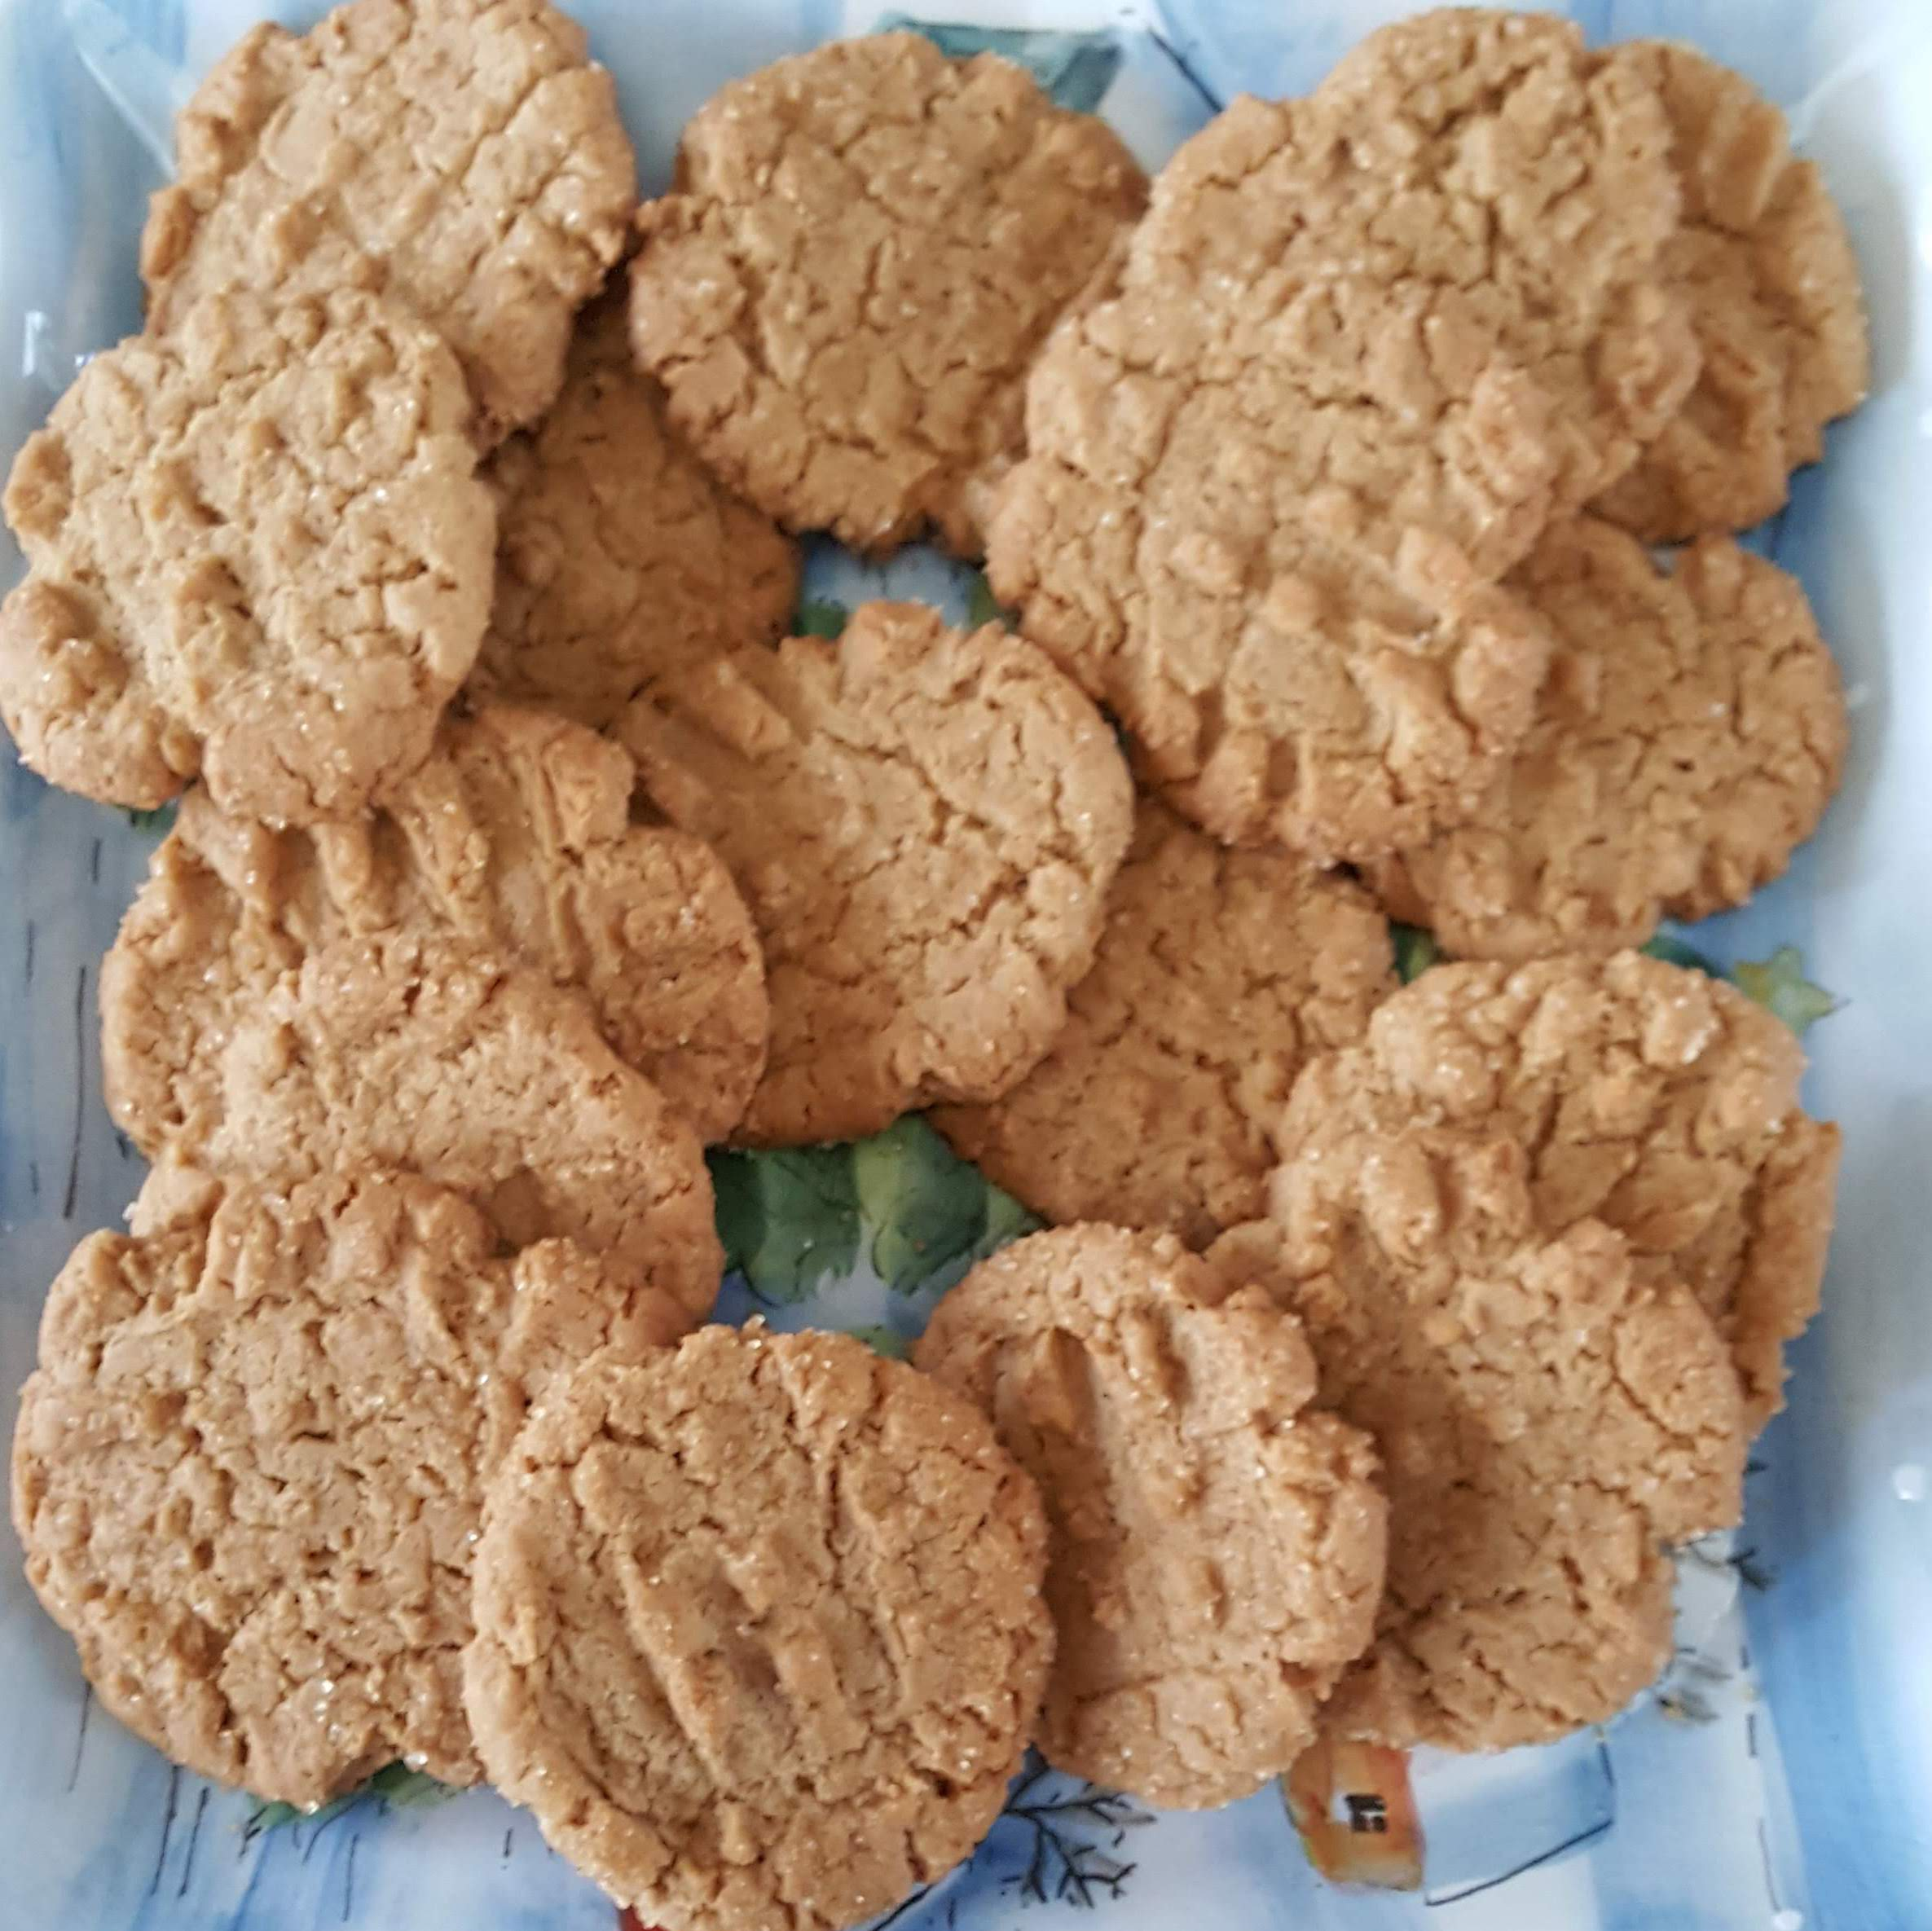 Fresh batch of vegan peanut butter cookies on a blue winter platter